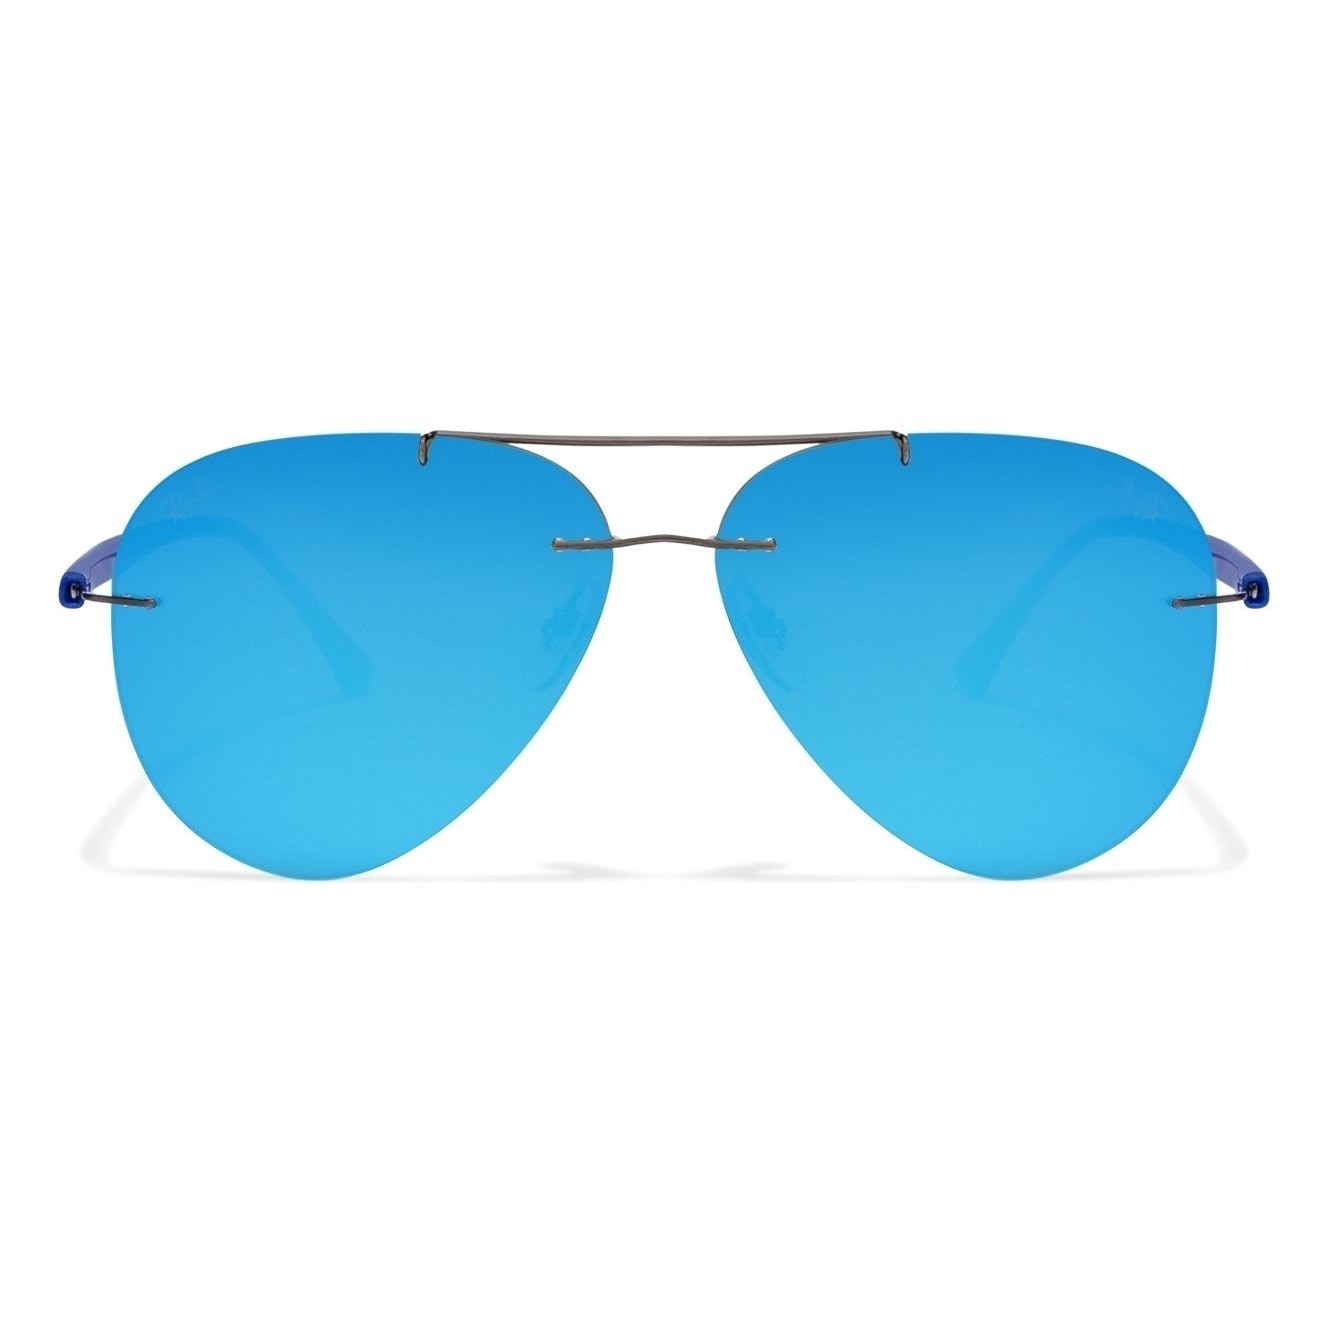 ffeba6d0754 Shop Ray-Ban RB8058 Men s Rimless Blue Mirror Lens Sunglasses - Free  Shipping Today - Overstock - 15287176